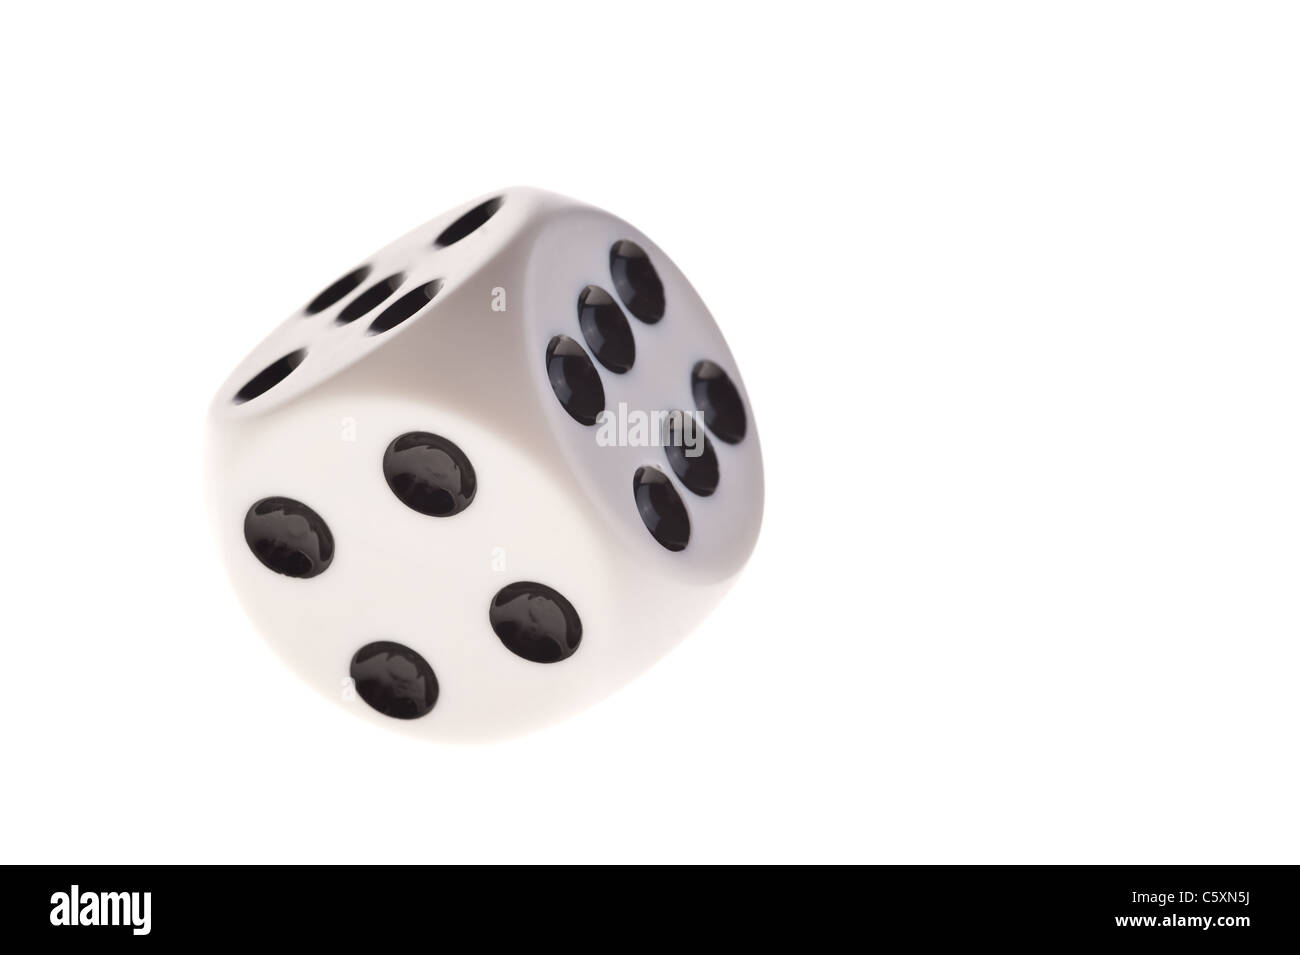 dice Image with 6 and 4 facing on white background - Stock Image